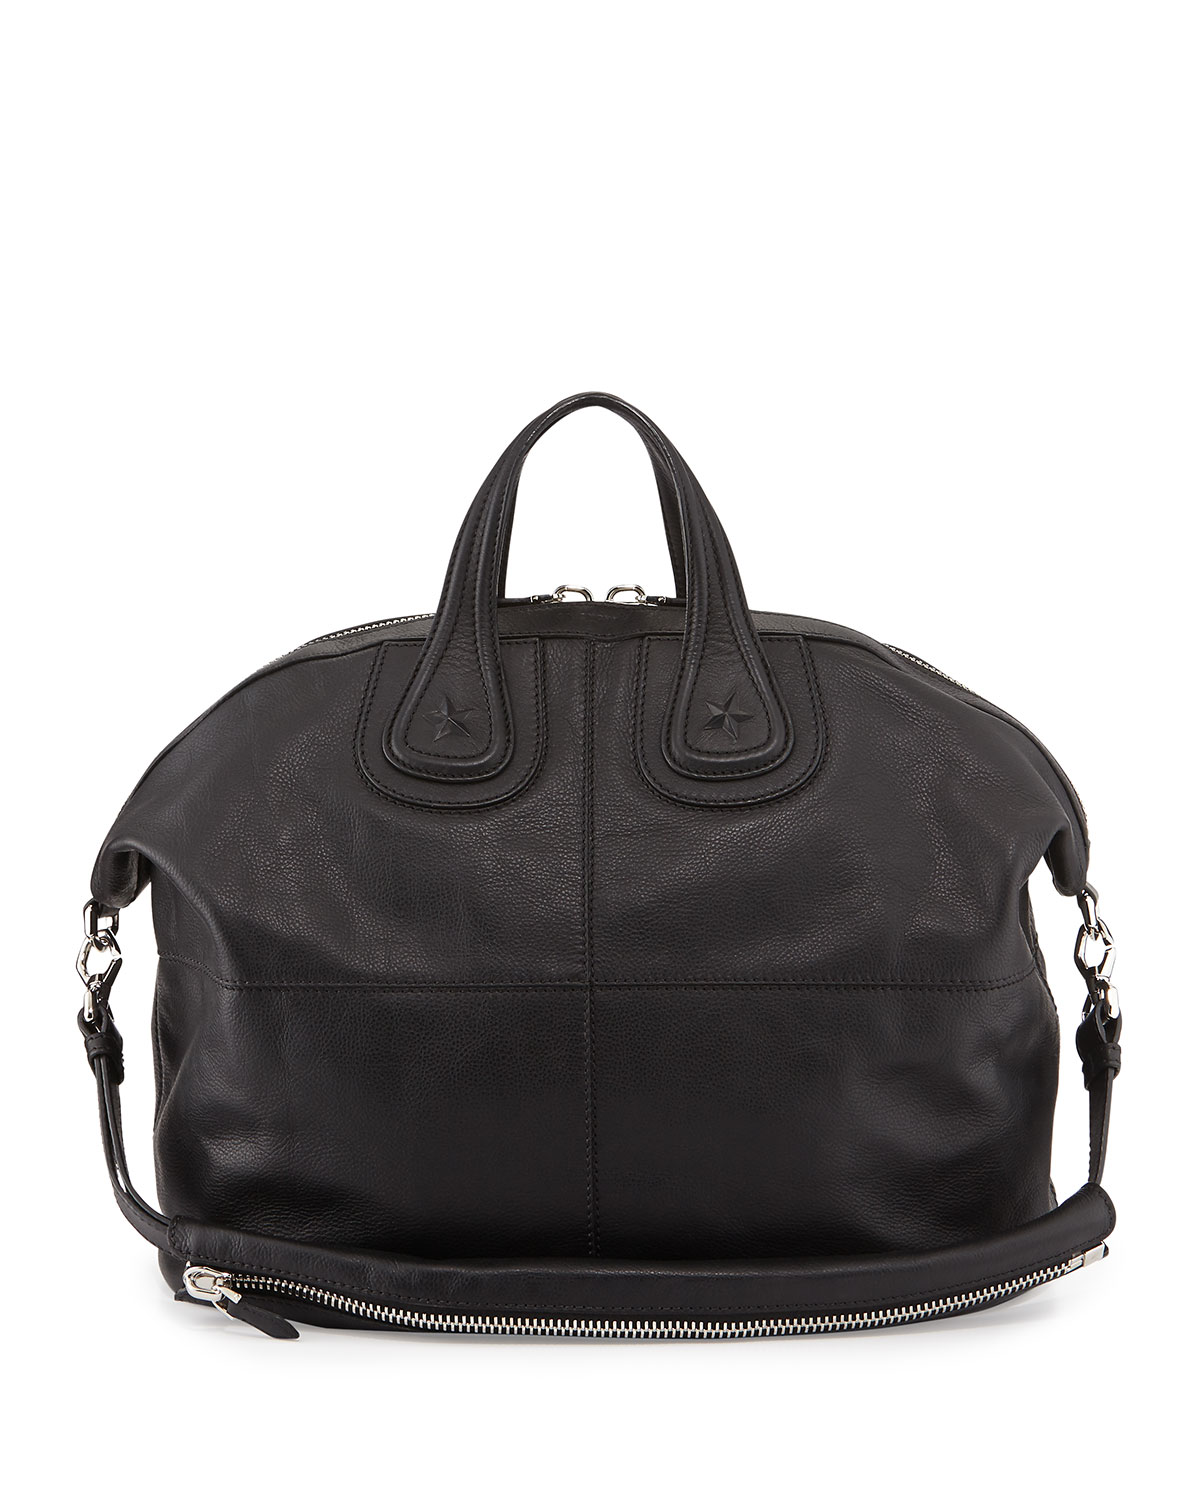 Givenchy Nightingale Mens Star-Embossed Satchel Bag, Black